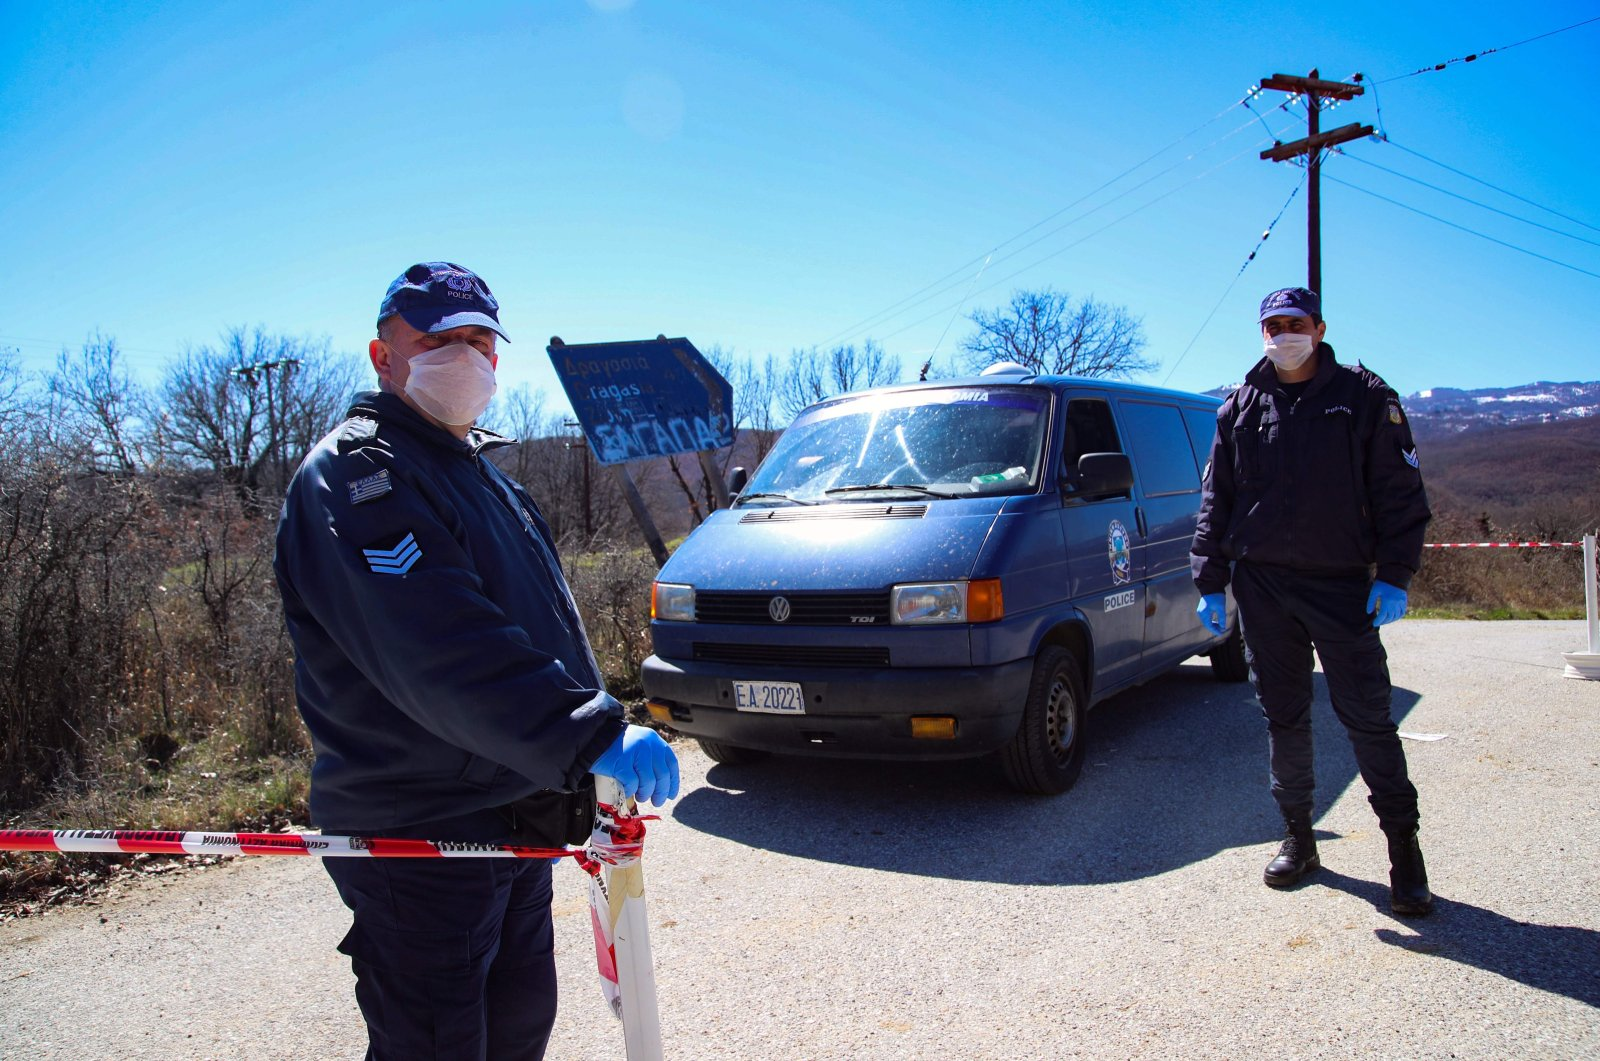 This file photo shows Greek policemen wearing face masks as a protective measure standing guard at a checkpoint on the road to the village of Dragasia near Kozani on Tuesday, March 17, 2020. (AFP Photo)